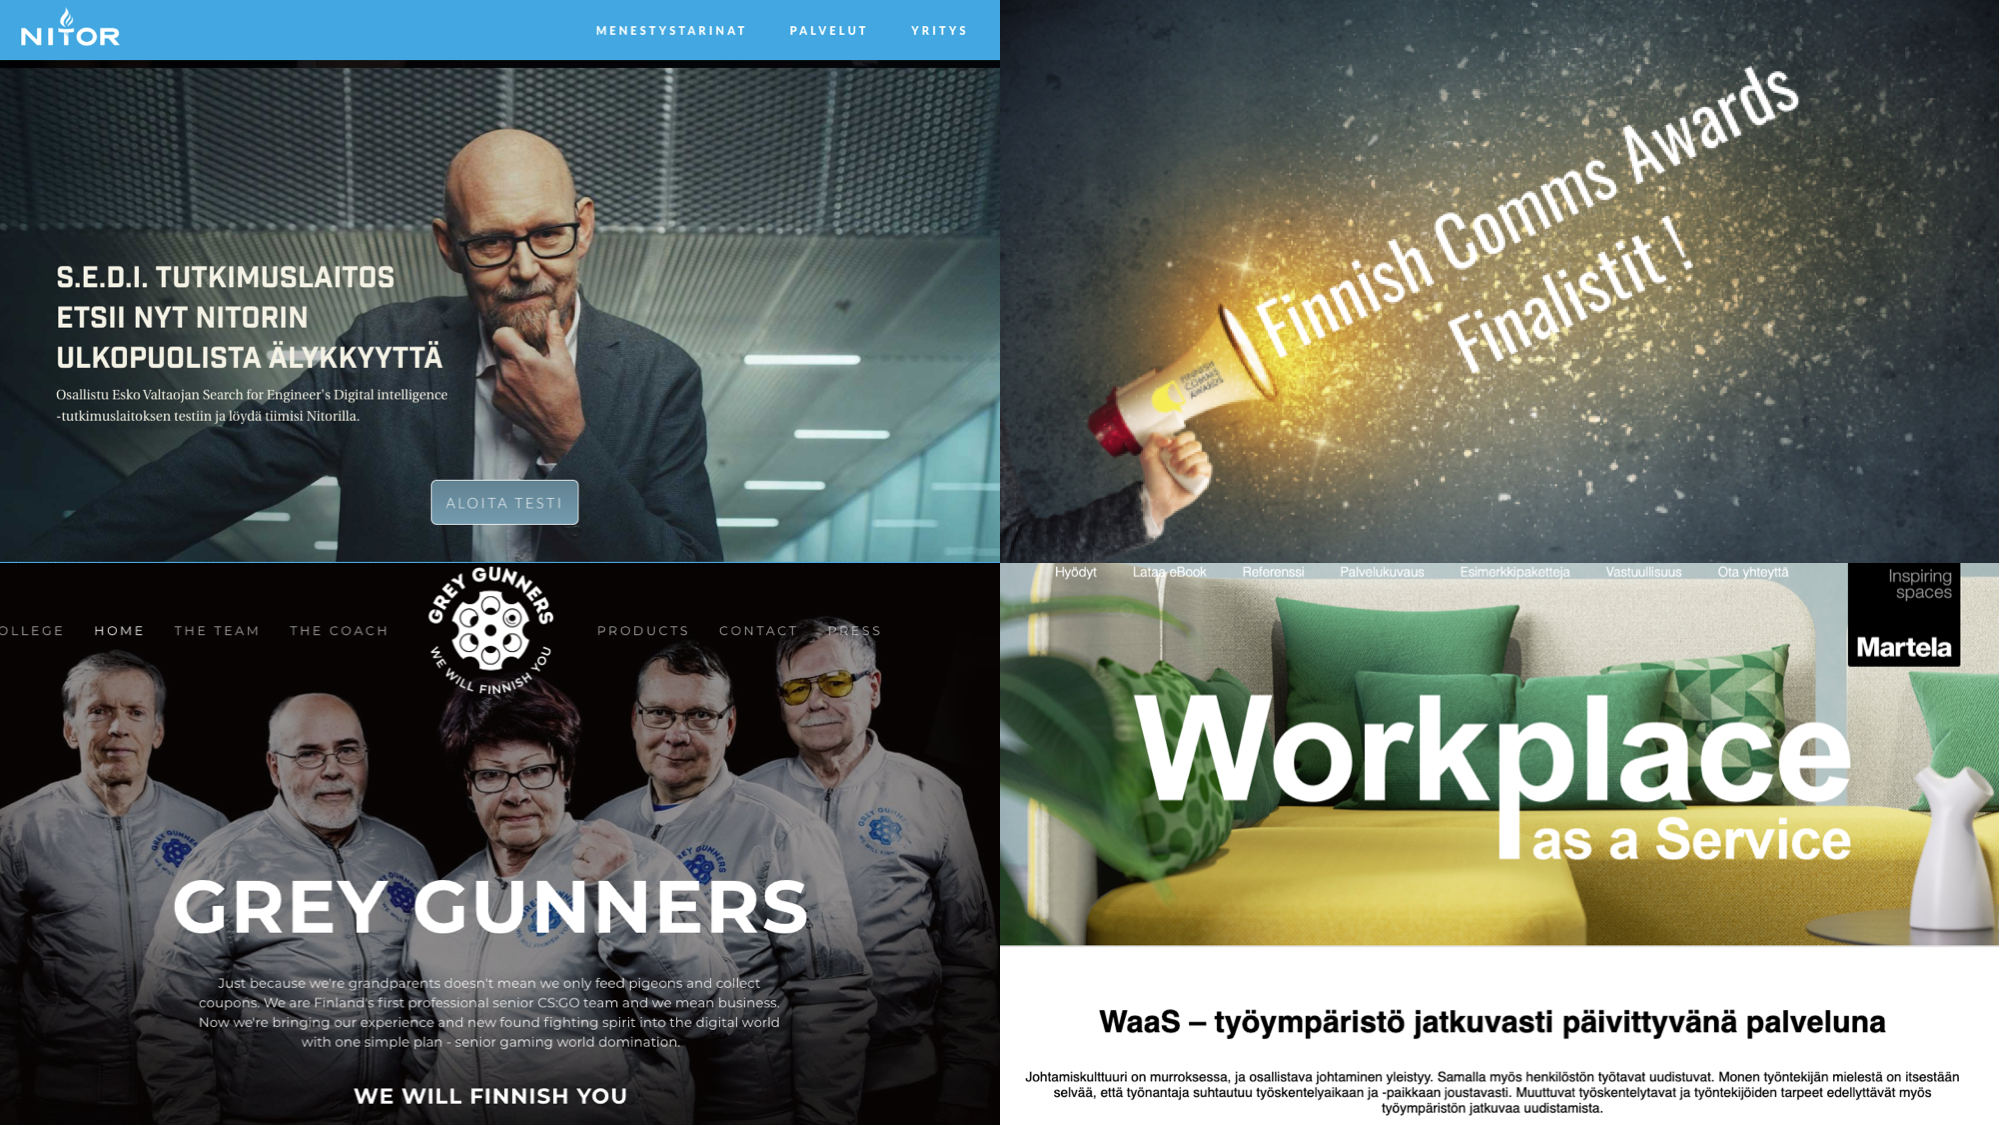 Finnish-Comms-Awards-finalistit-Netprofile-Nitor-Lenovo-Martela